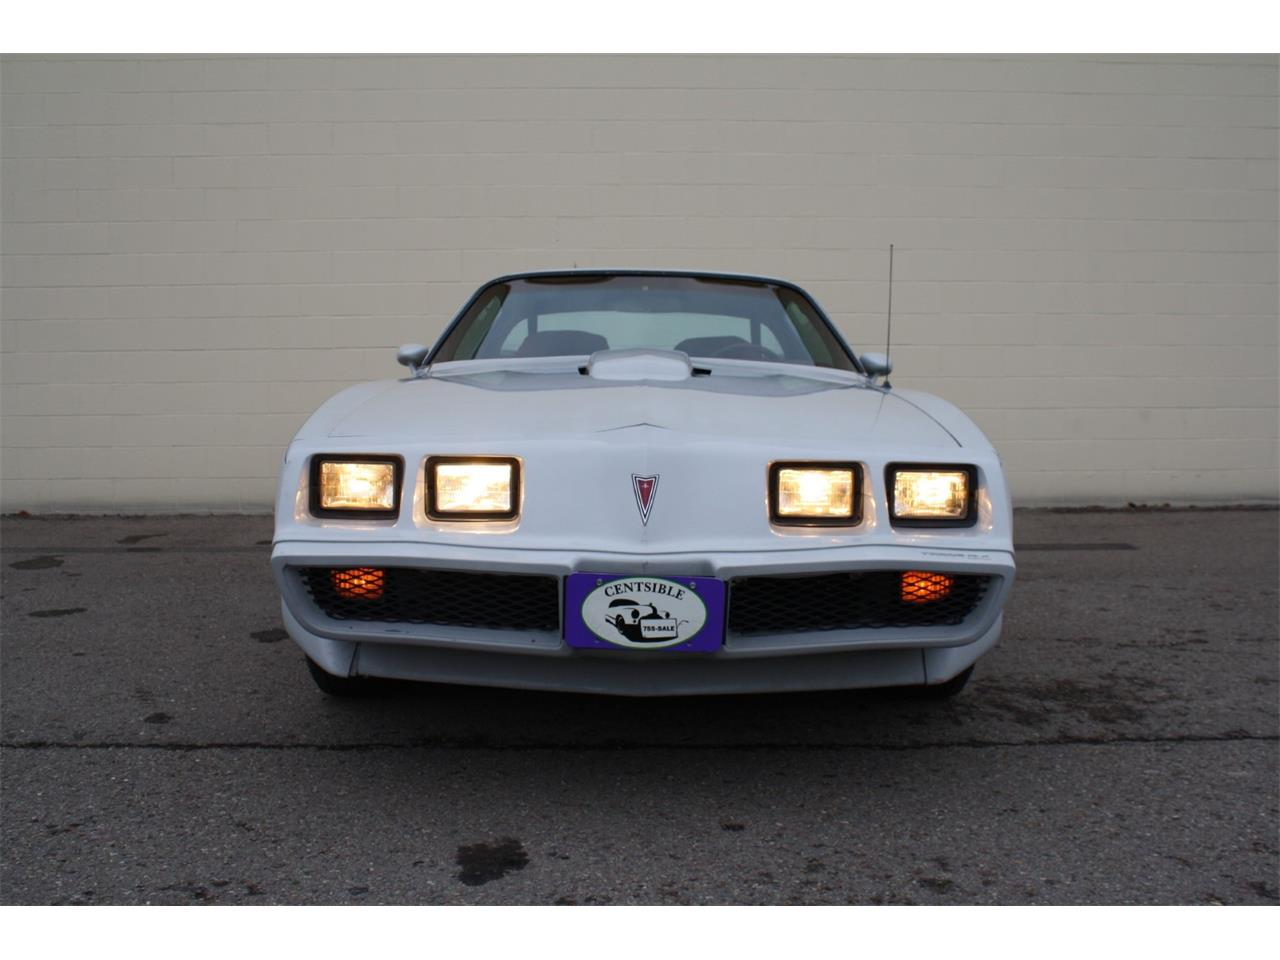 Large Picture of '79 Pontiac Firebird Trans Am Auction Vehicle Offered by Lucky Collector Car Auctions - Q67P